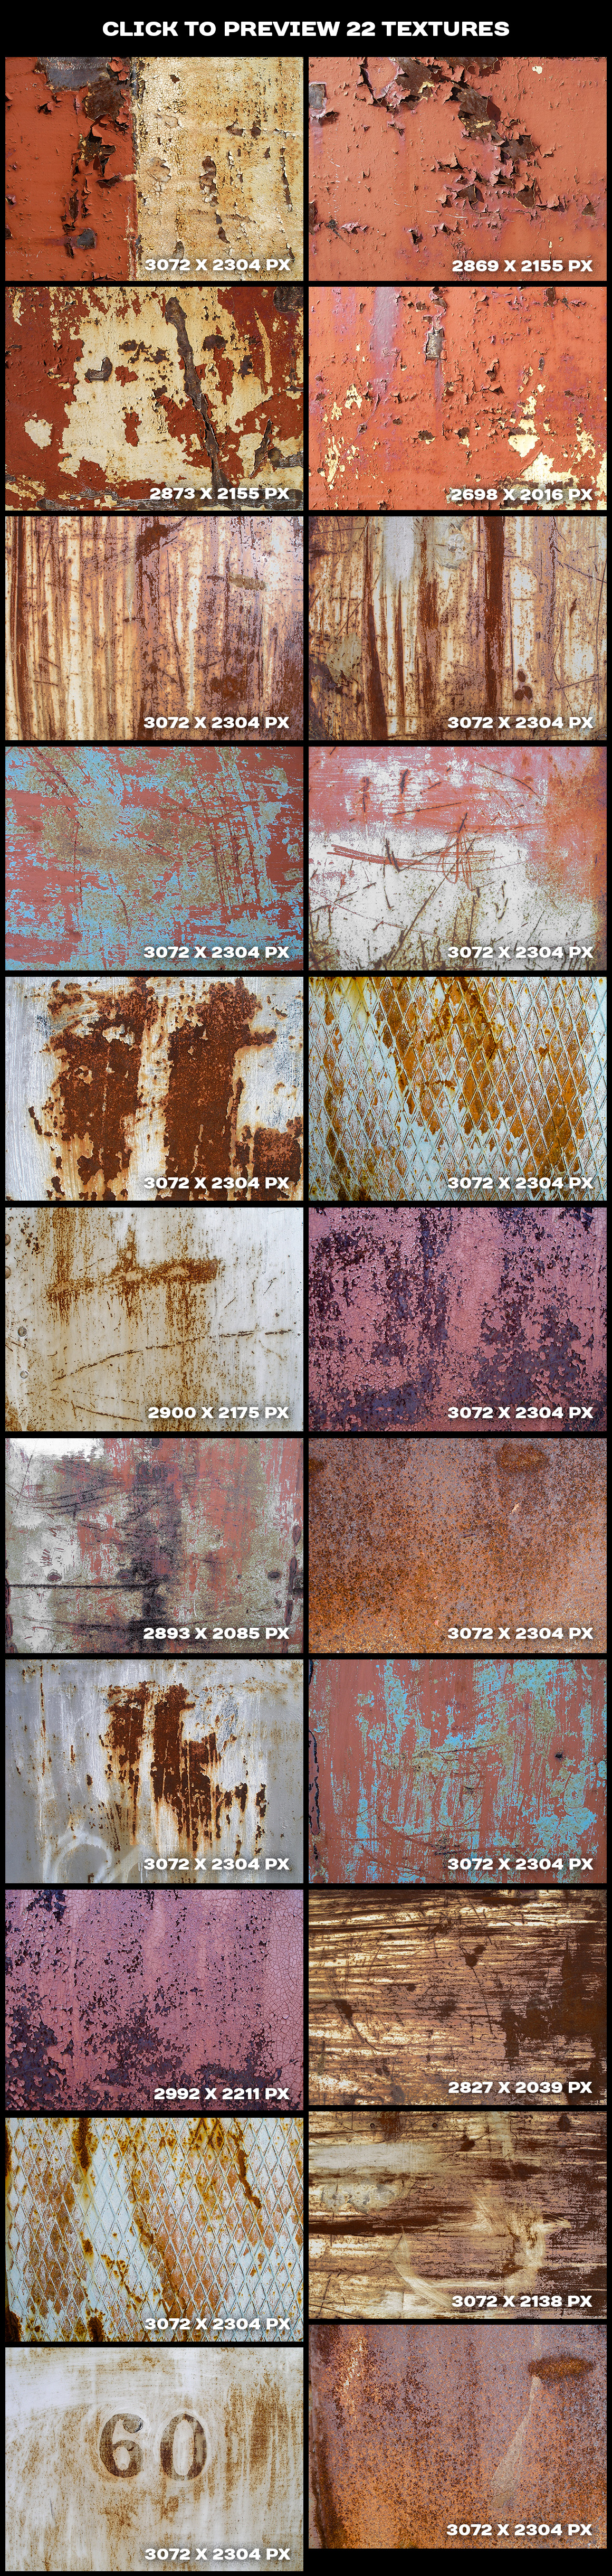 Cracked paint and concrete wall textures